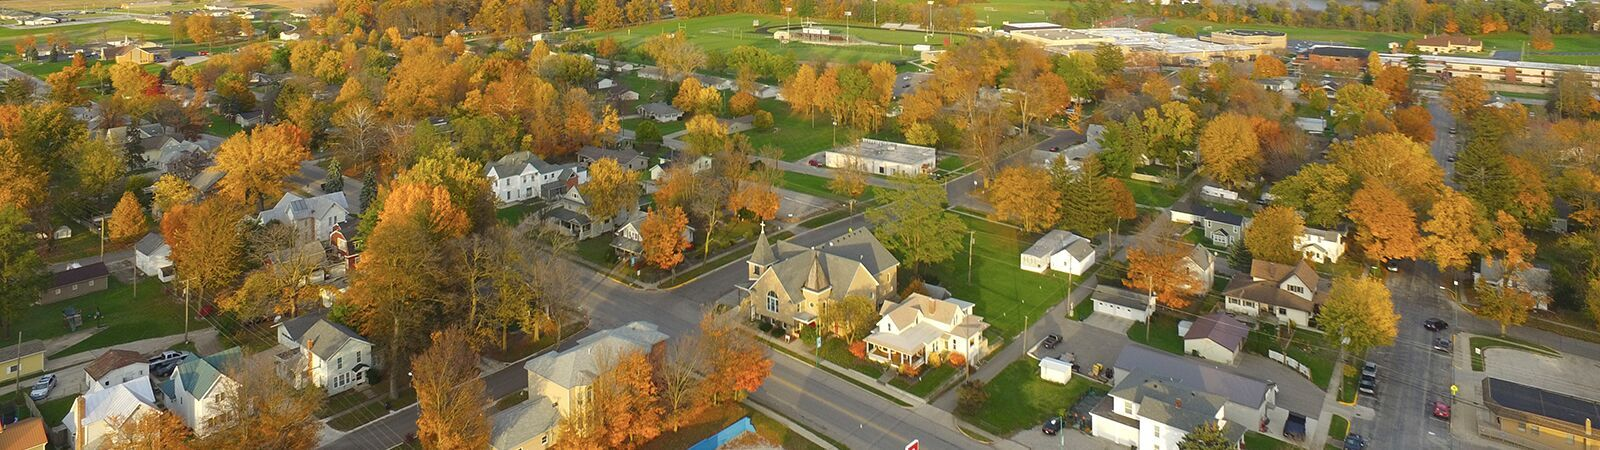 It's starting to look like fall in northeast Indiana. <span class='image-credits'>By Stephen J. Bailey</span>